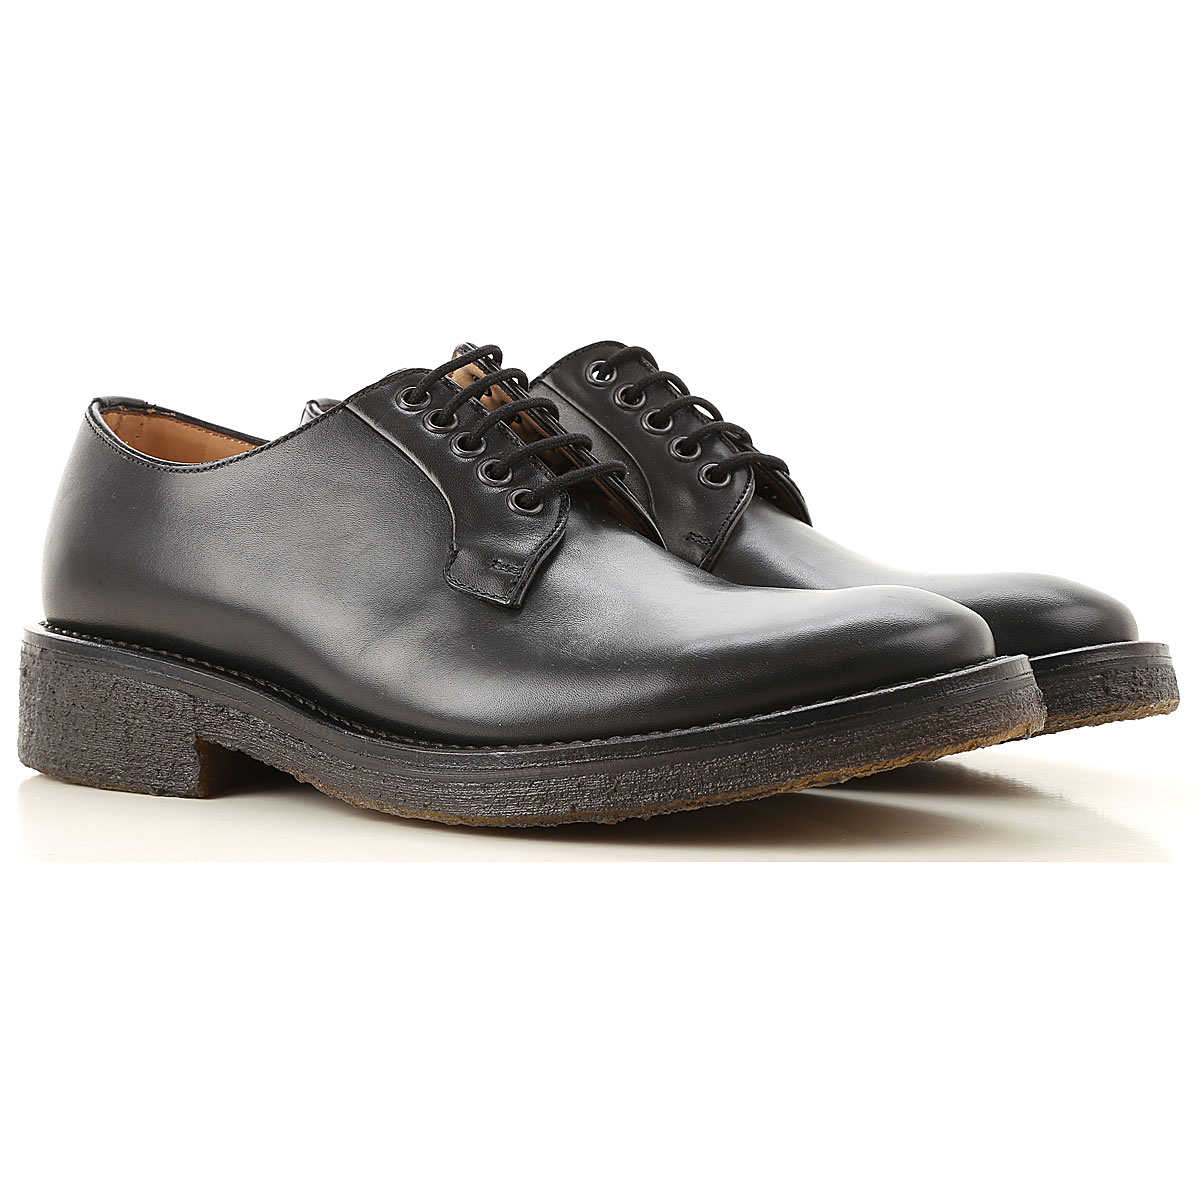 Seboys Lace Up Shoes for Men Oxfords 6.5 6.75 7 7.5 8 8.5 9 9.25 9.5 Derbies and Brogues UK - GOOFASH